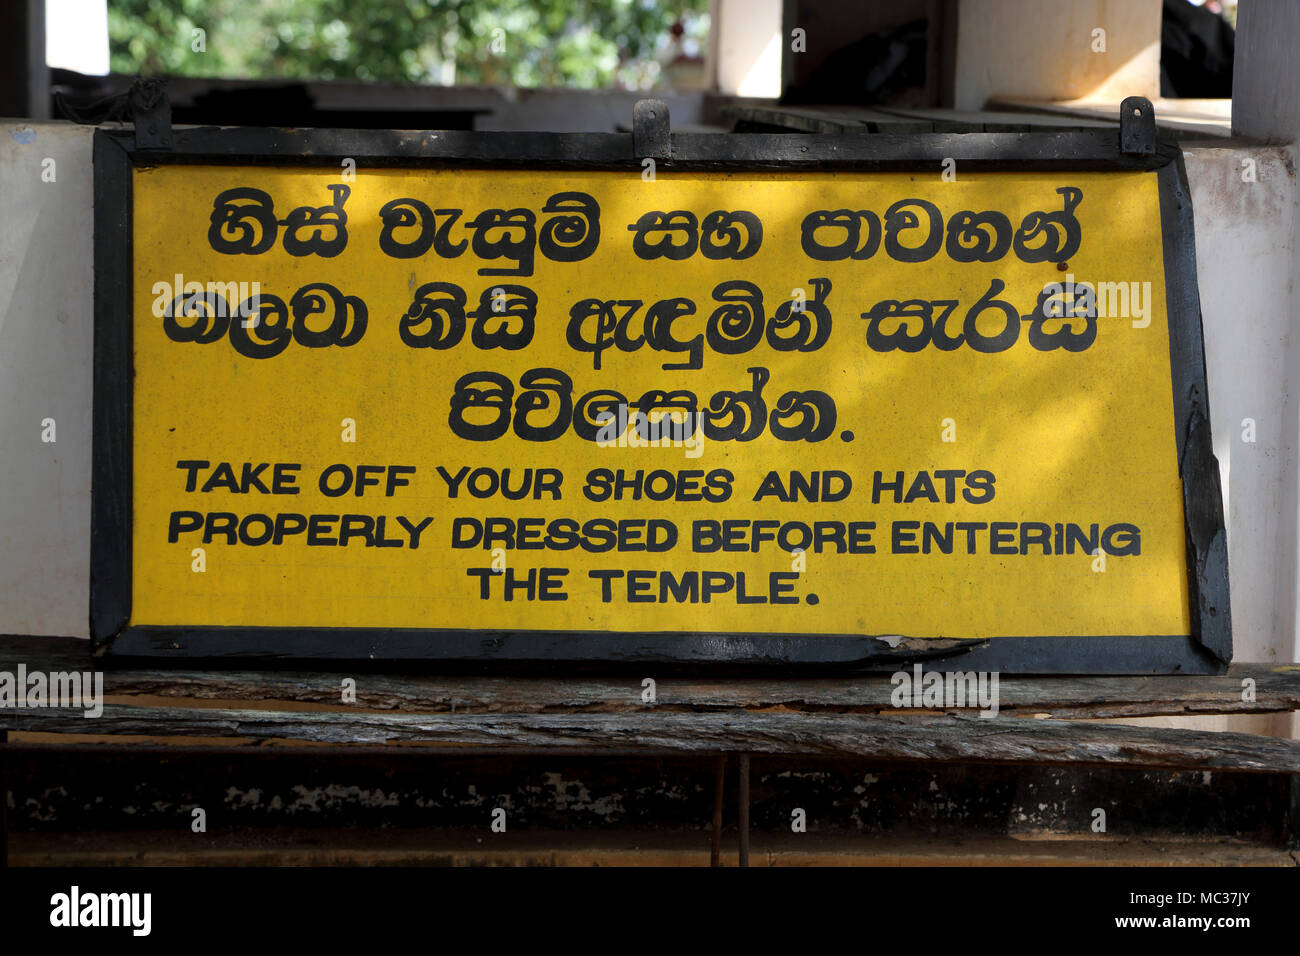 """Avukana Ancient Rock Temple Kekirawa North Central Province Sri Lanka Bilingual Sign """" Take off shoes and hats properly dressed before entering the te Stock Photo"""